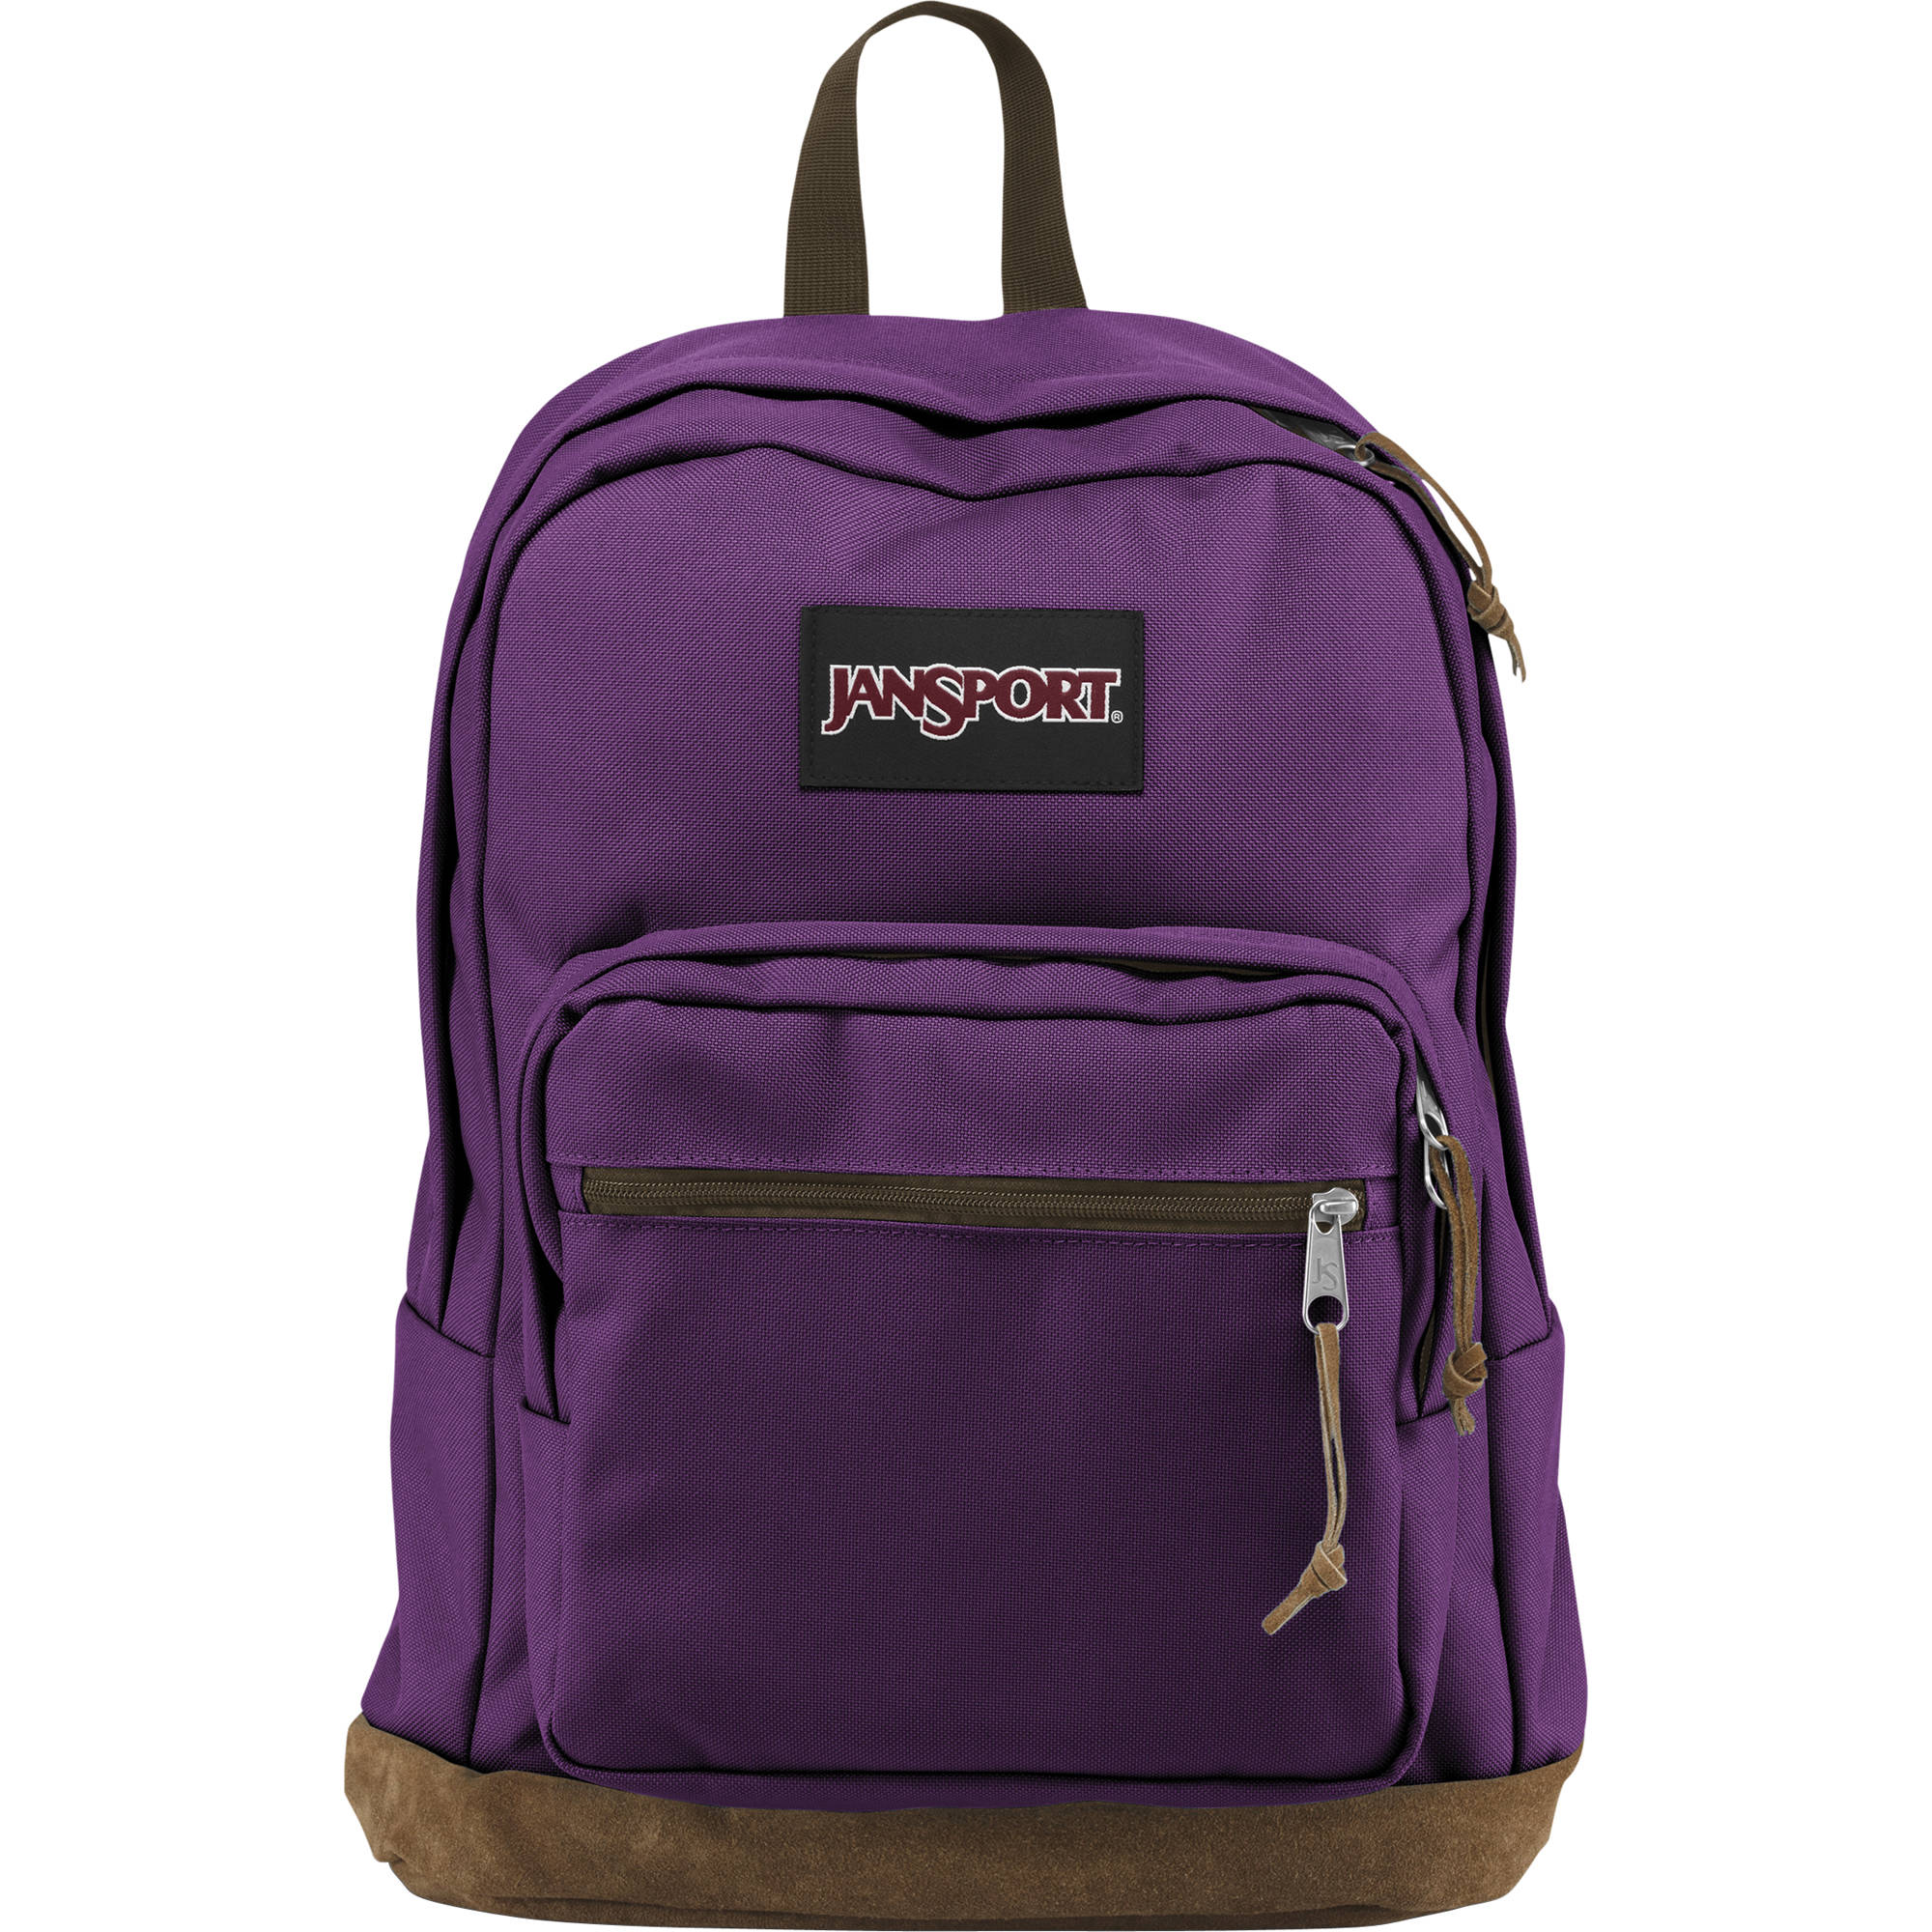 JanSport Right Pack Backpack (Vivid Purple) TYP72C8 B&H Photo